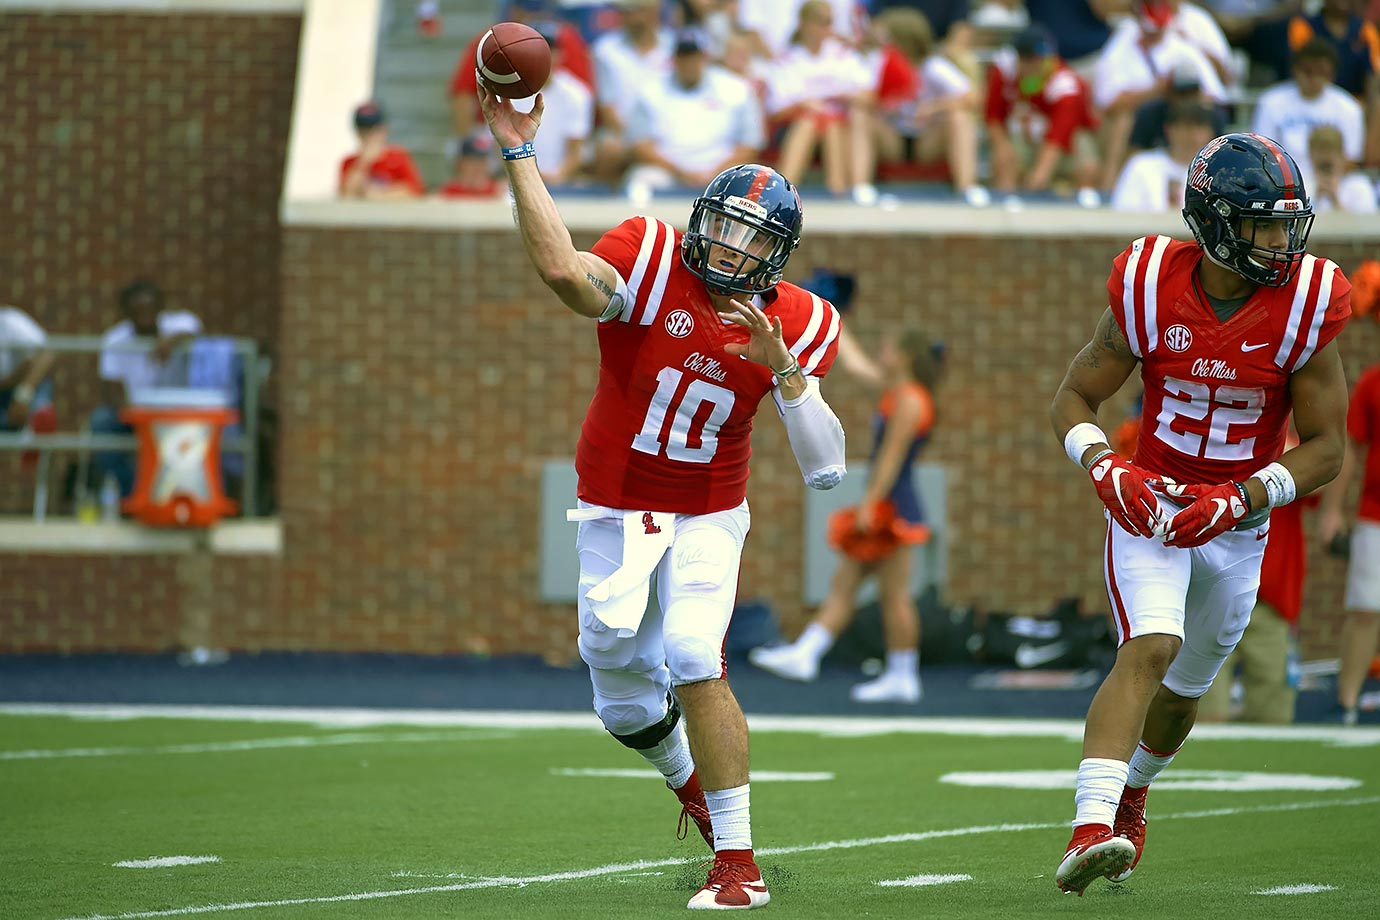 Kelly was one of 10 finalists for the 2015 Manning Award, which is awarded to the nation's top quarterback. He earned second-team All-SEC honors after throwing for 4,042 yards and 31 touchdowns.